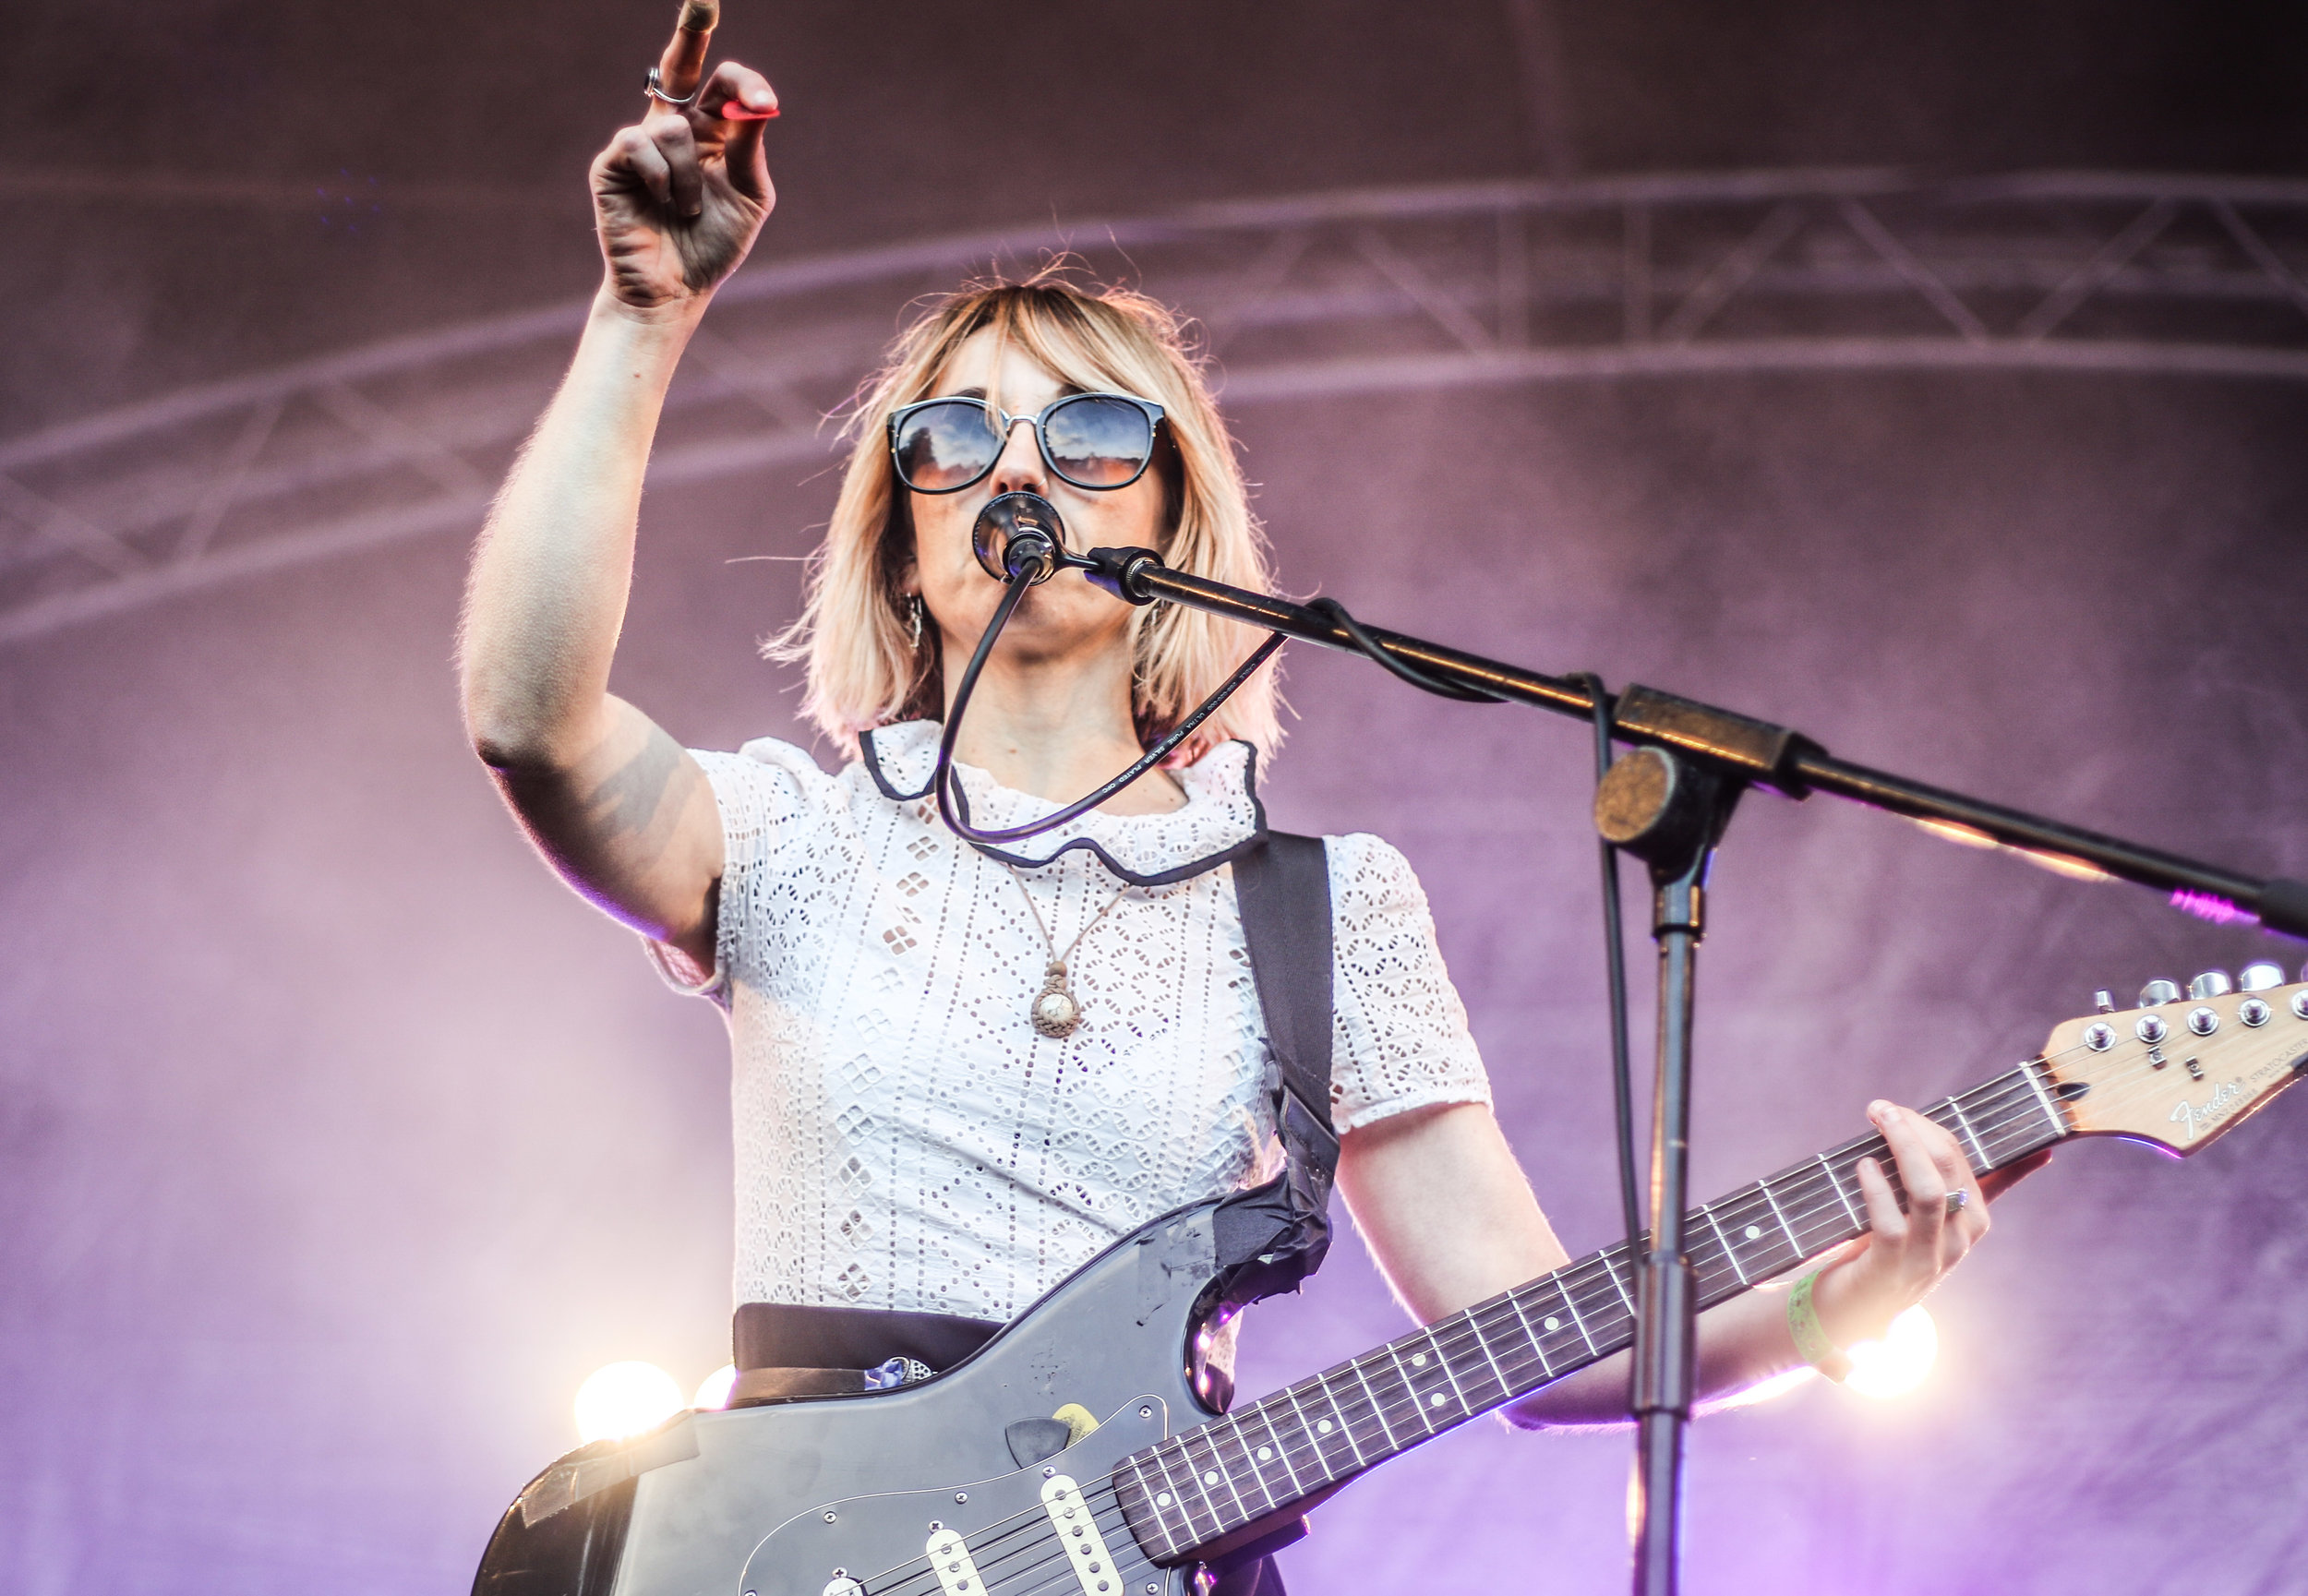 The Joy Formidable - Hardwick Live - 18-19-08.19-1.jpg